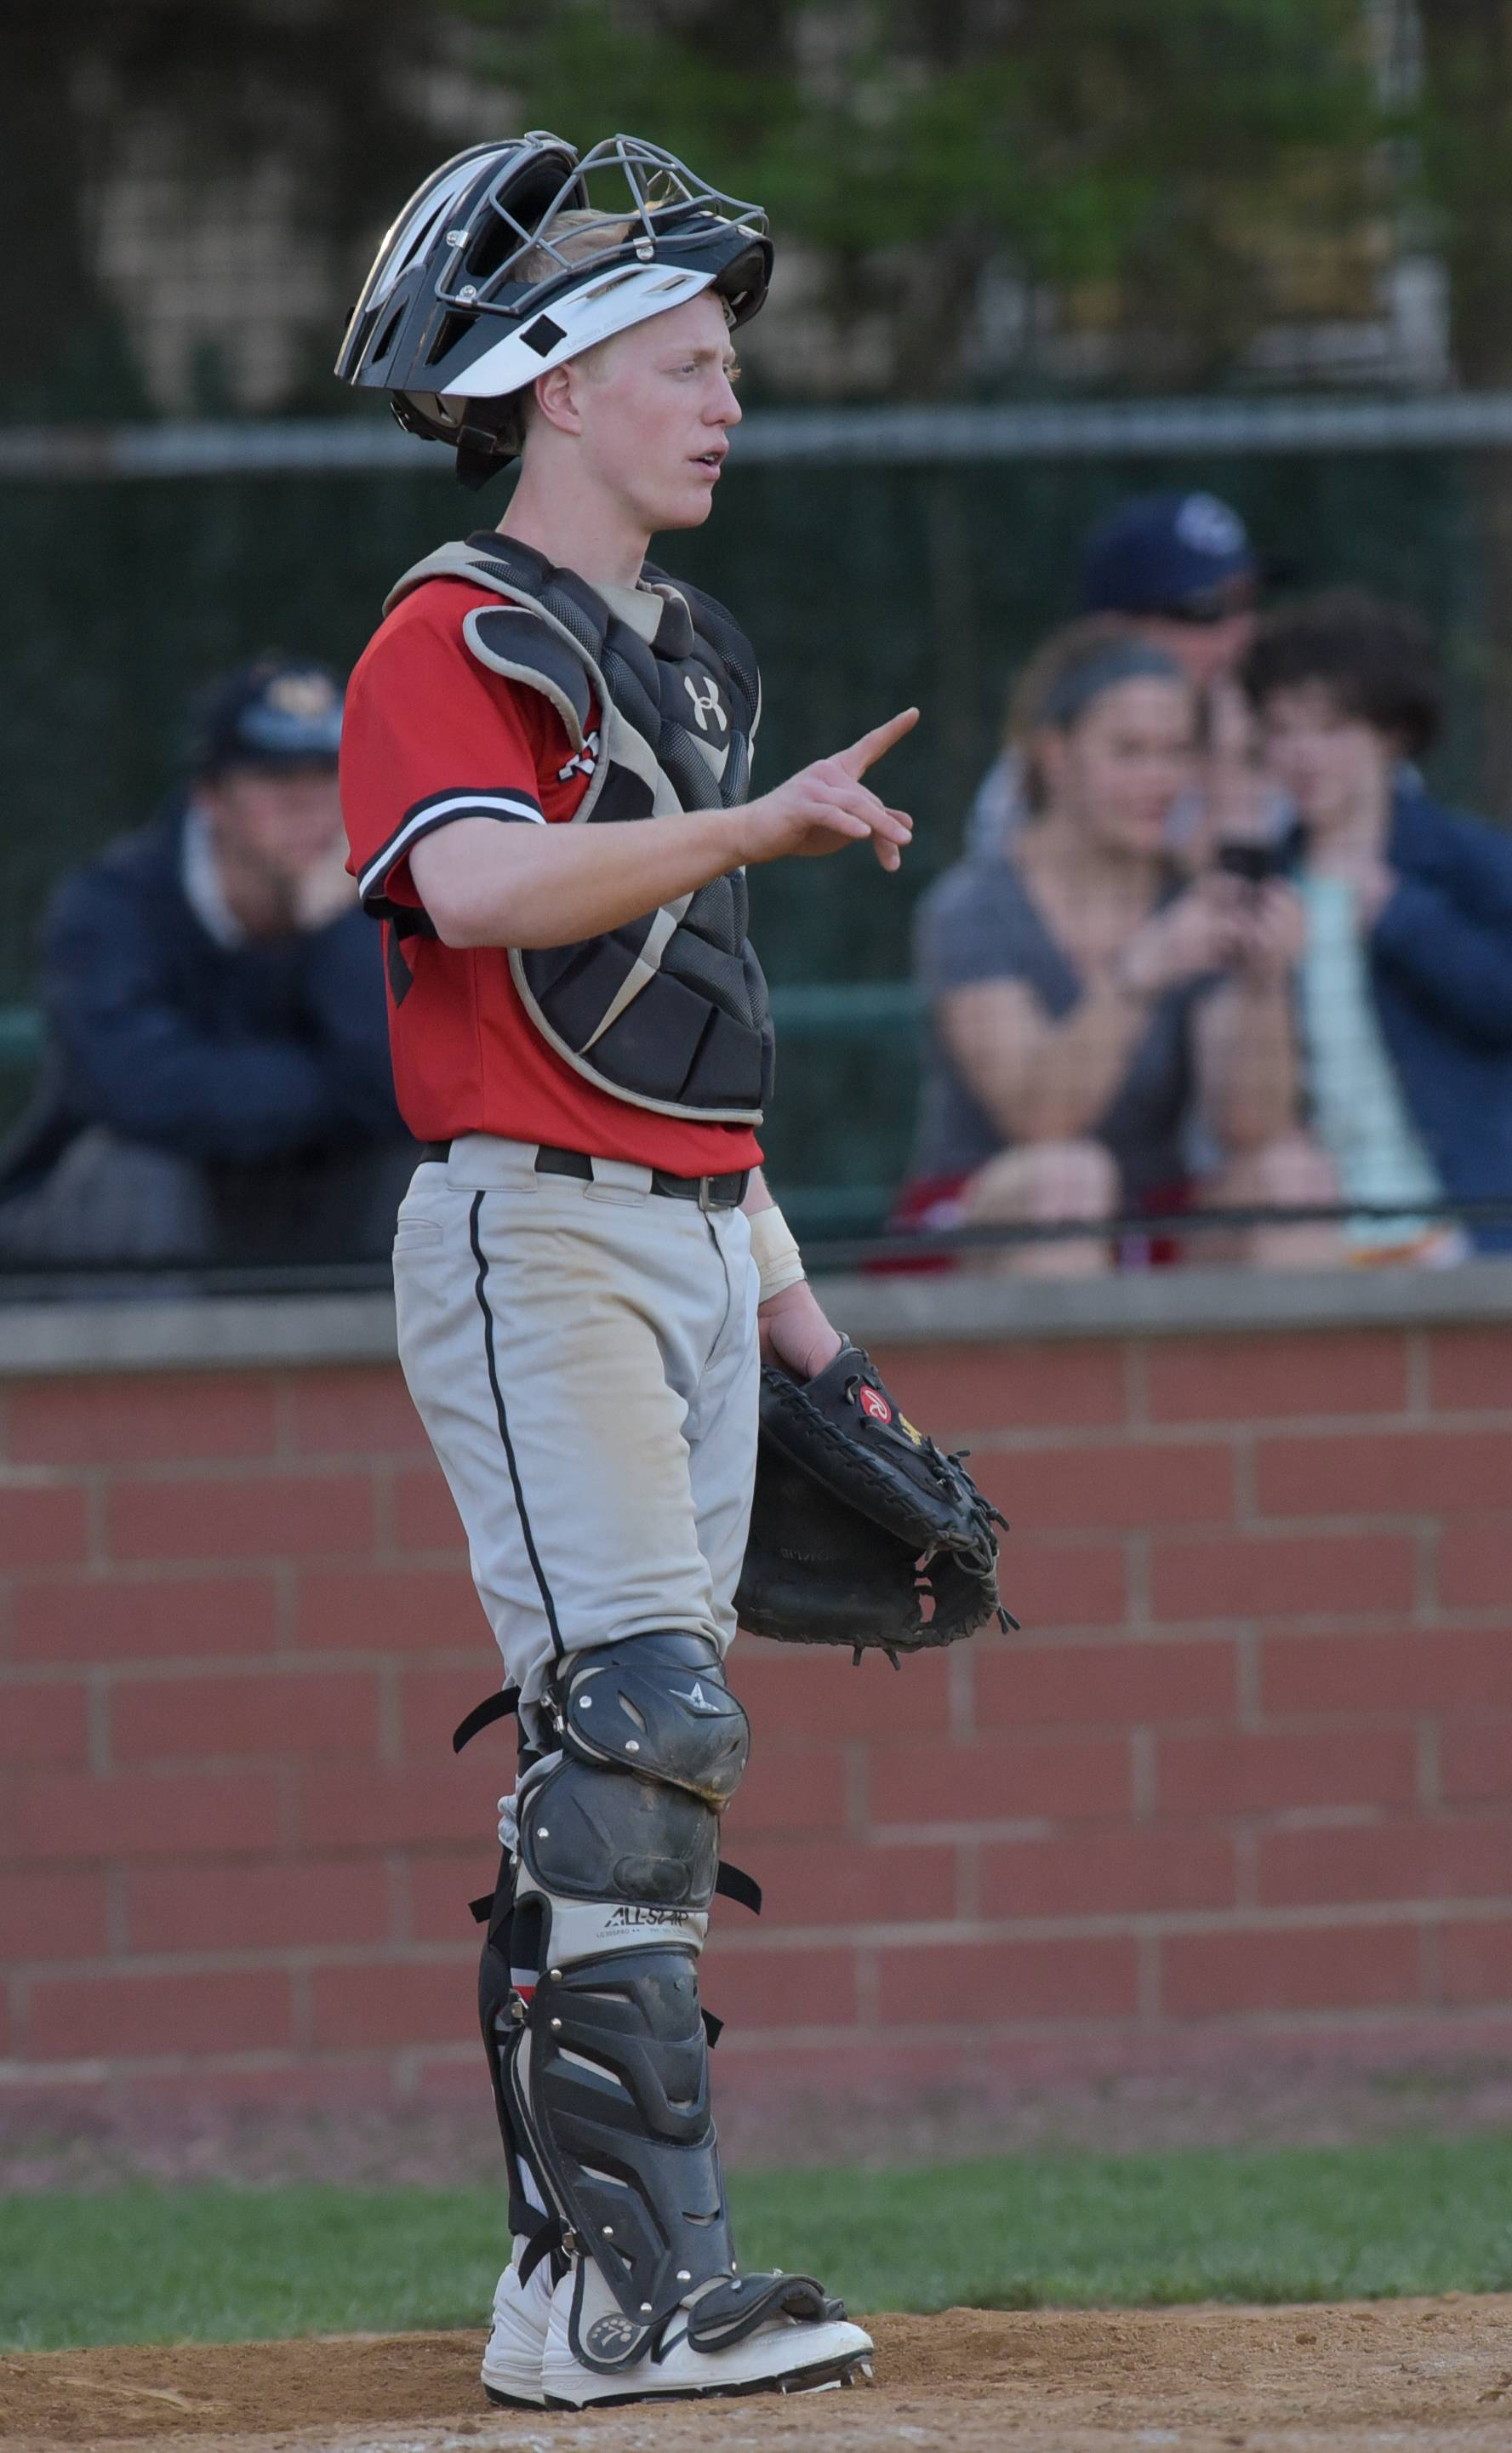 Benet Academy's Anthony Adams during varsity baseball against Nazareth in Lisle, April 18, 2017.